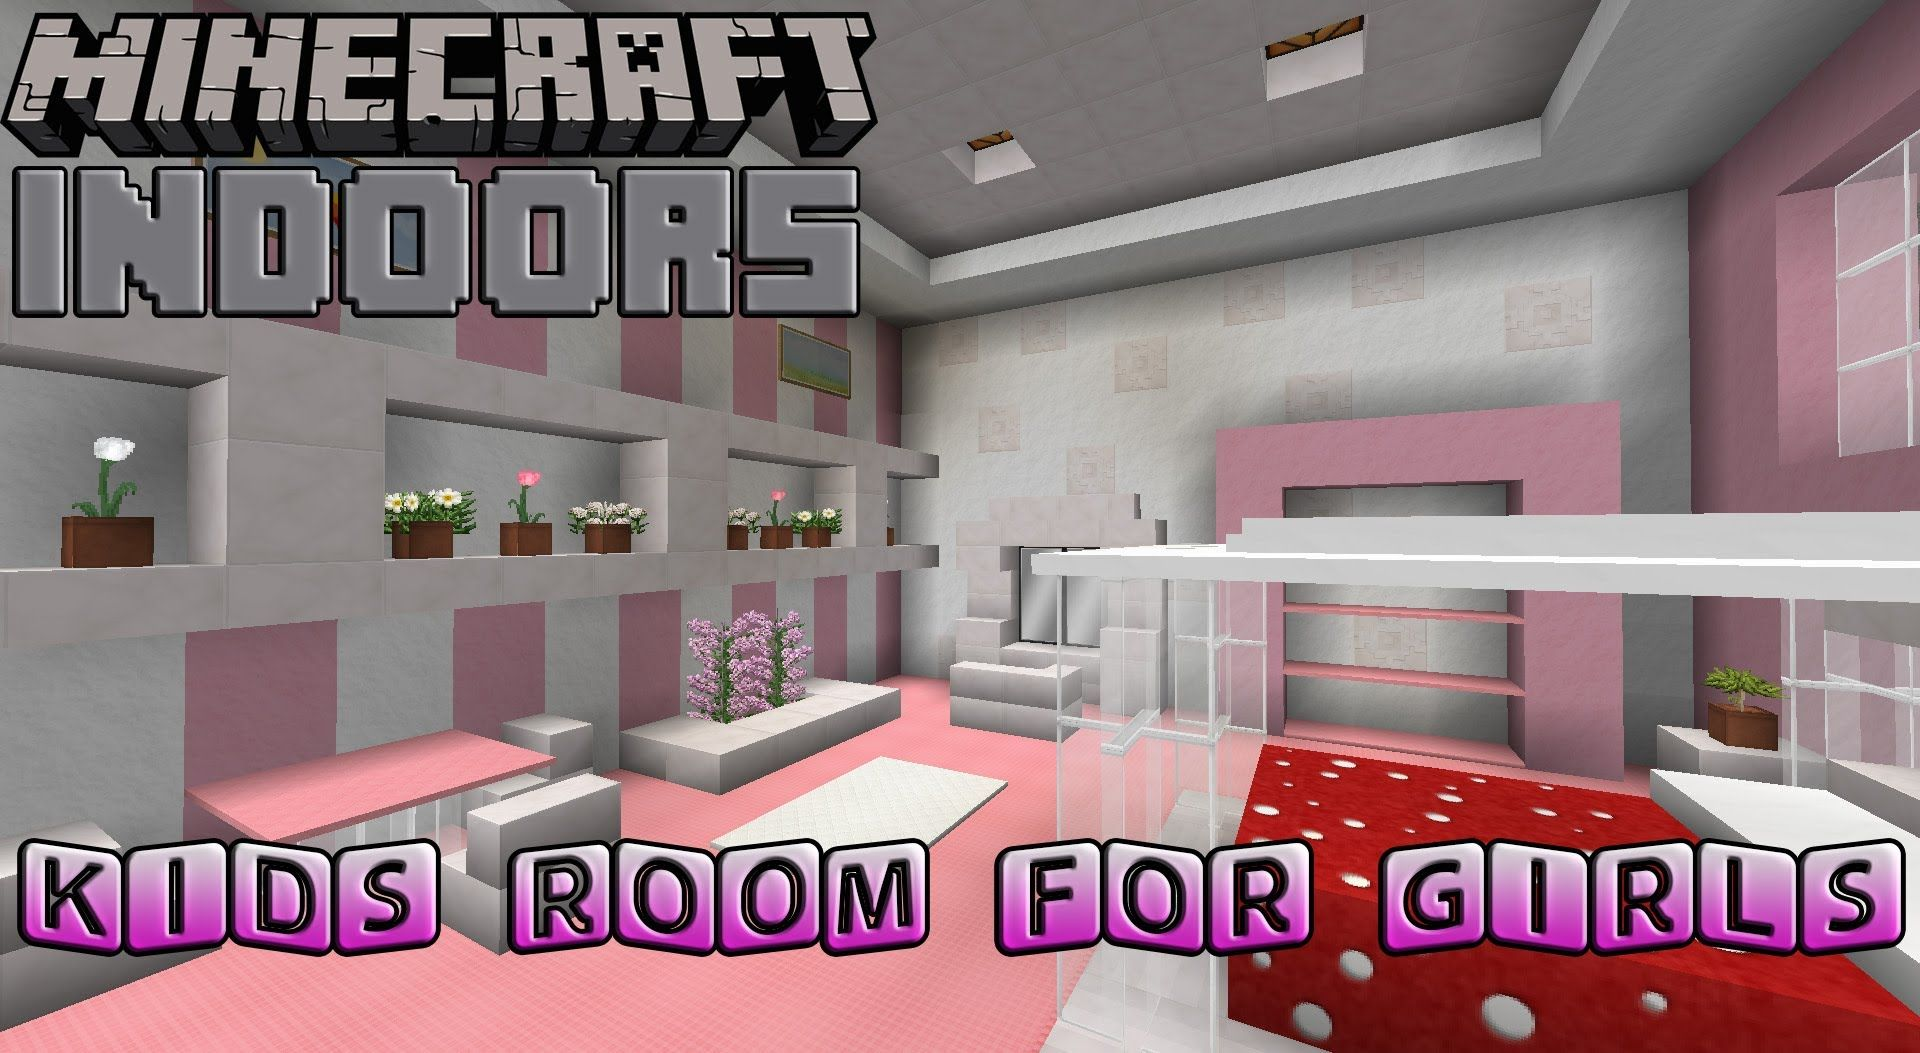 Furniture Design Videos check this great minecraft video out. sweet looking kids room for